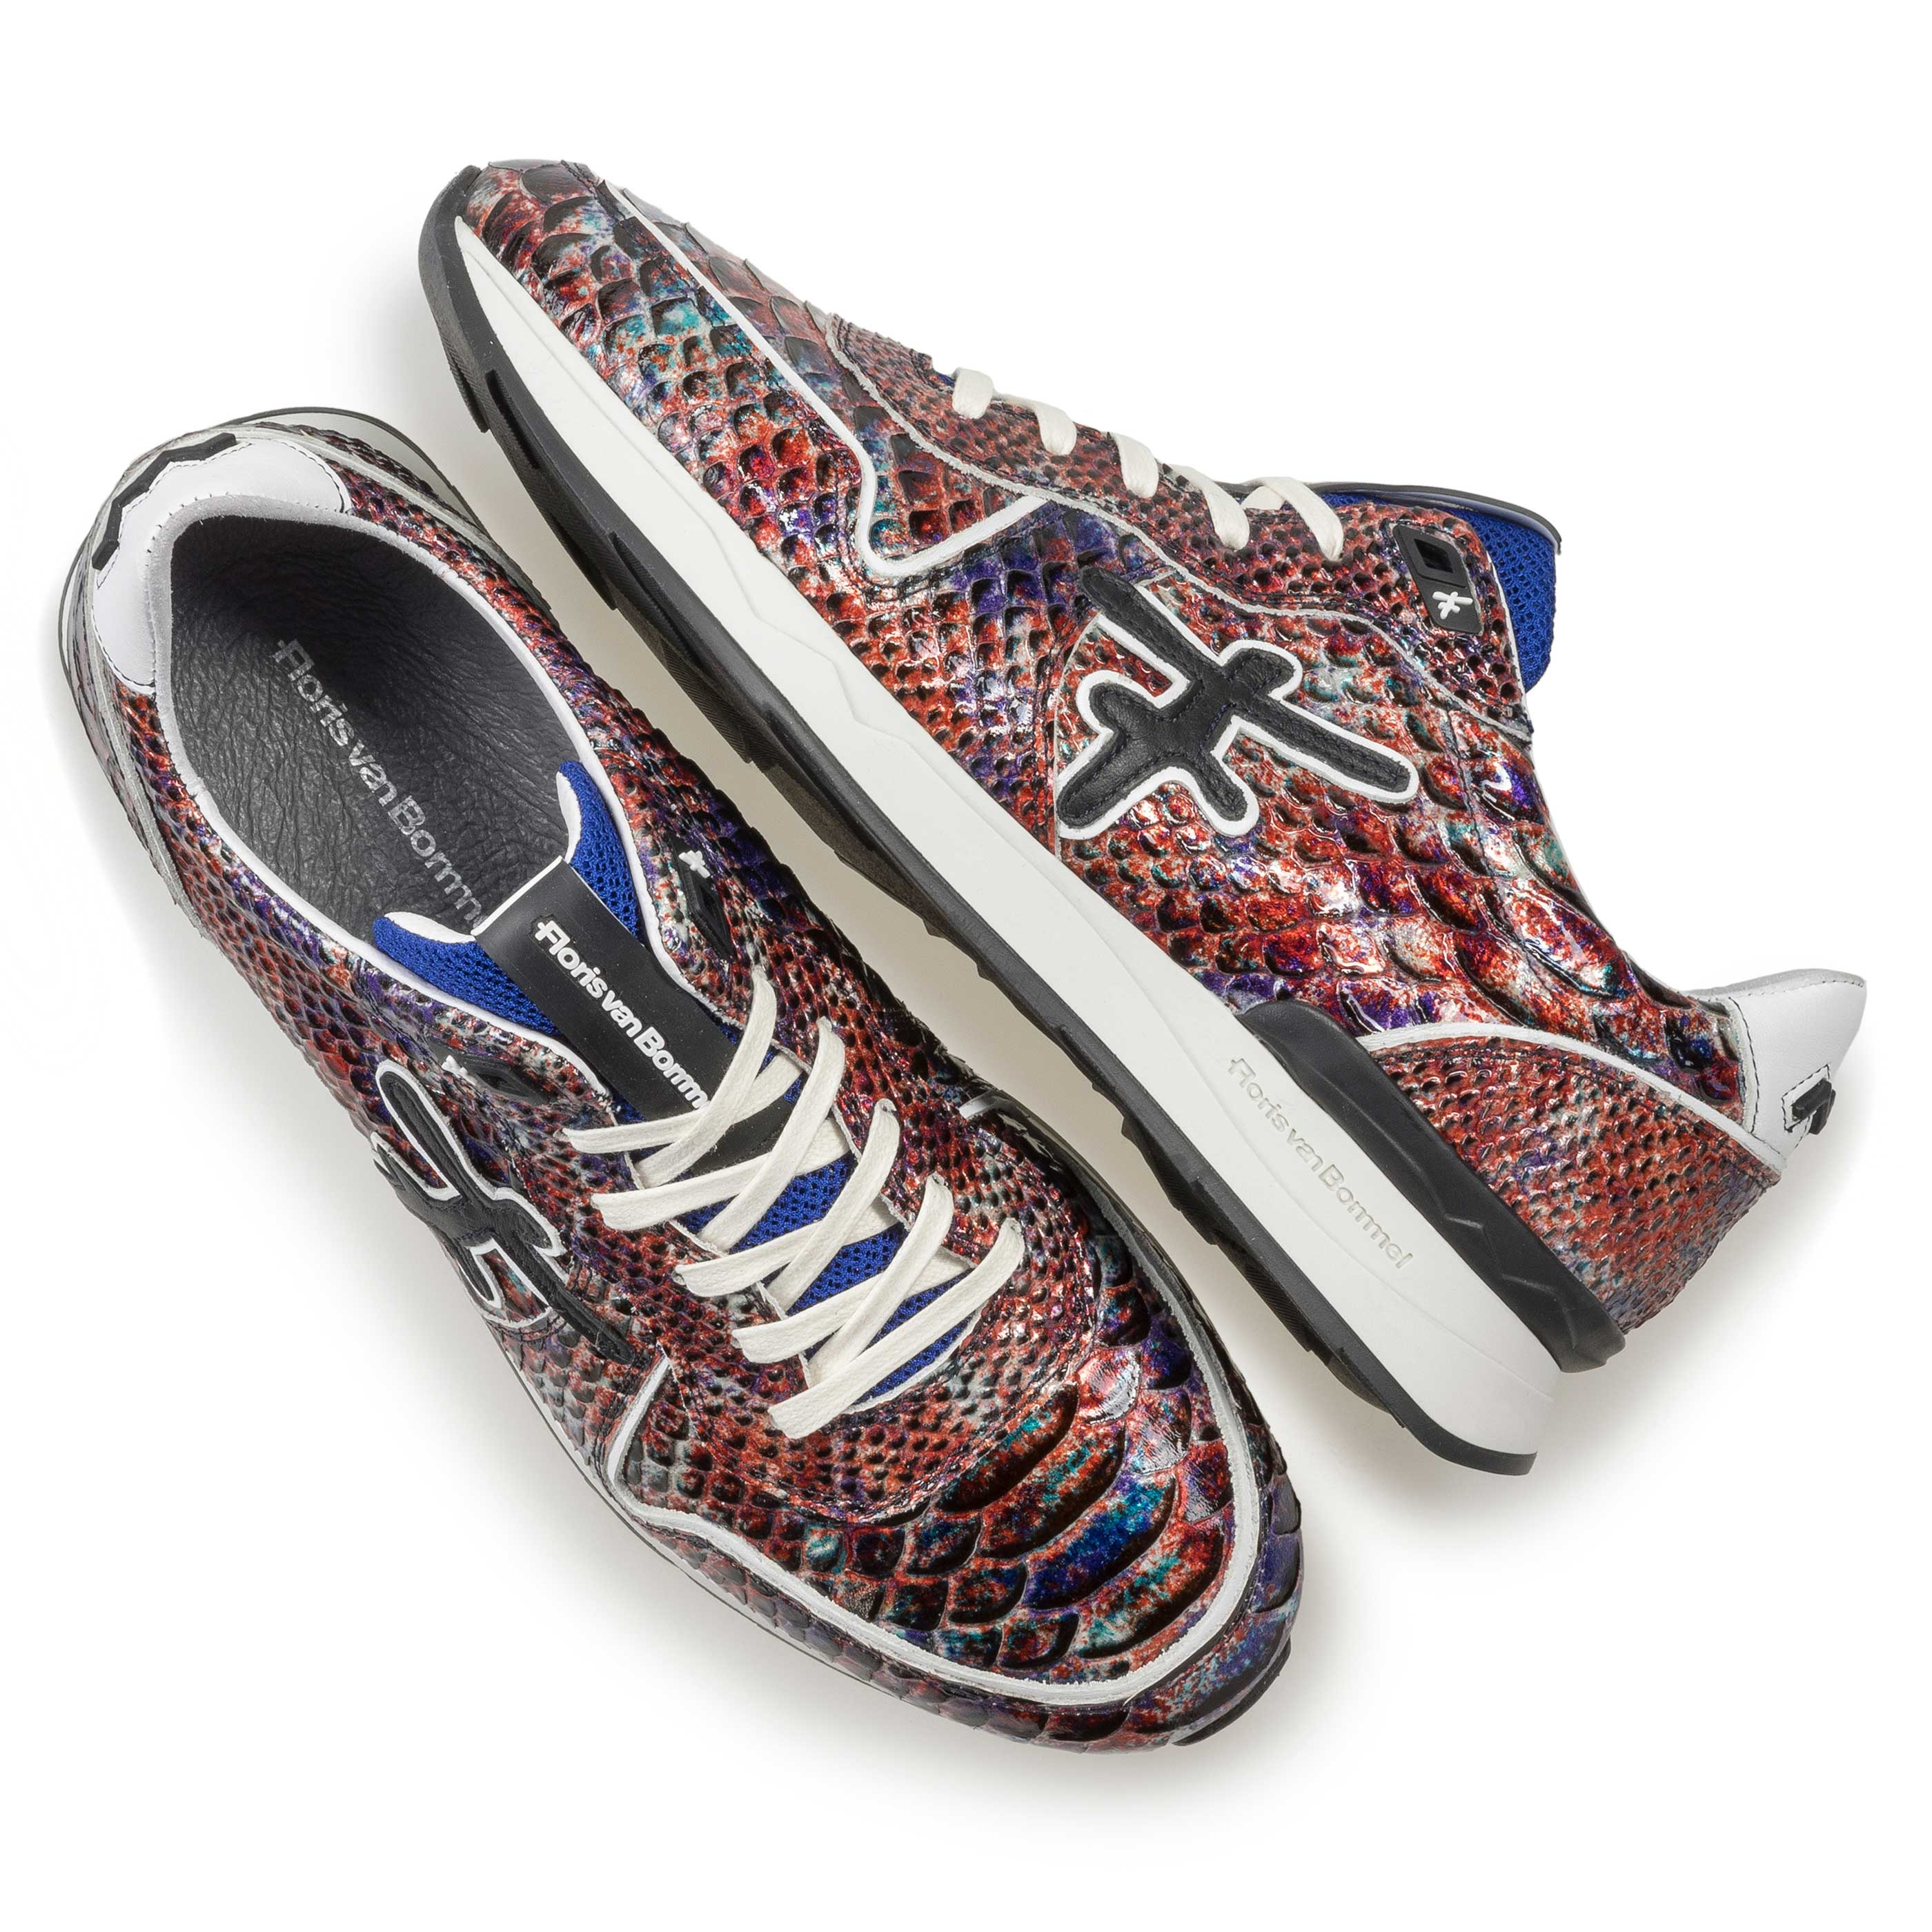 16246/12 - Red patent leather snake print sneaker